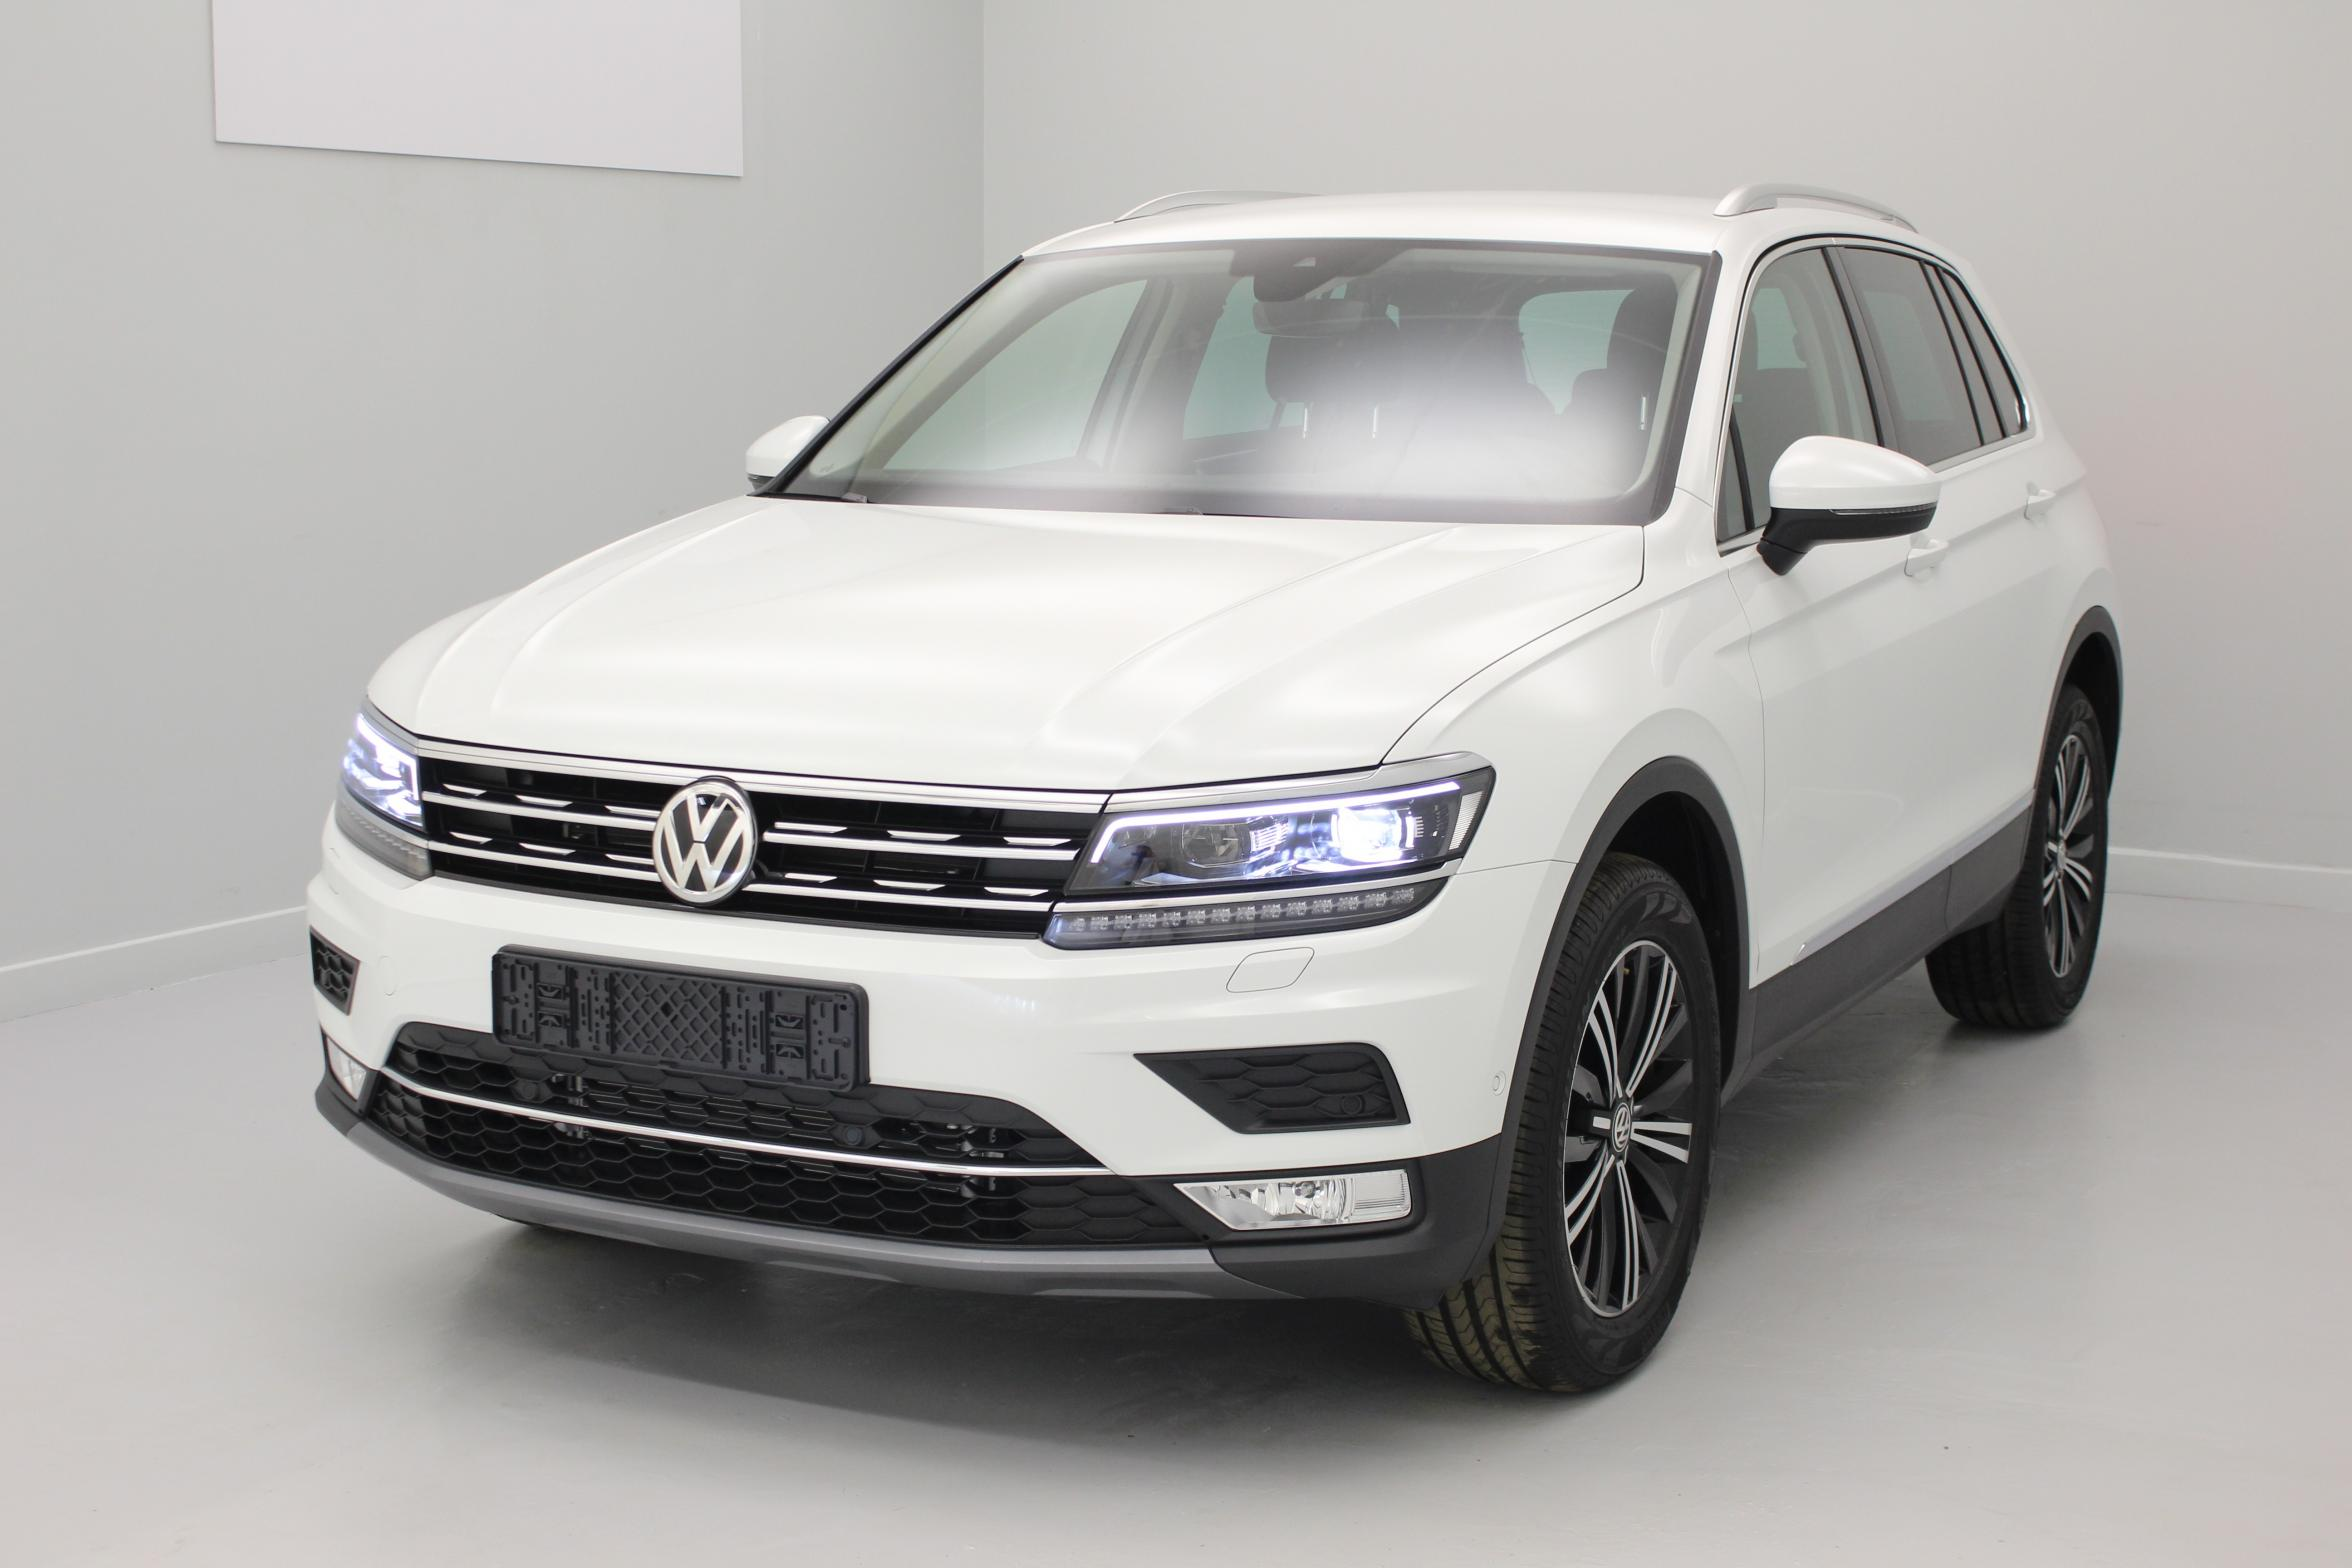 volkswagen nouveau tiguan 2 0 tdi 150 bmt dsg7 4motion confortline blanc pur jantes alliage 18. Black Bedroom Furniture Sets. Home Design Ideas